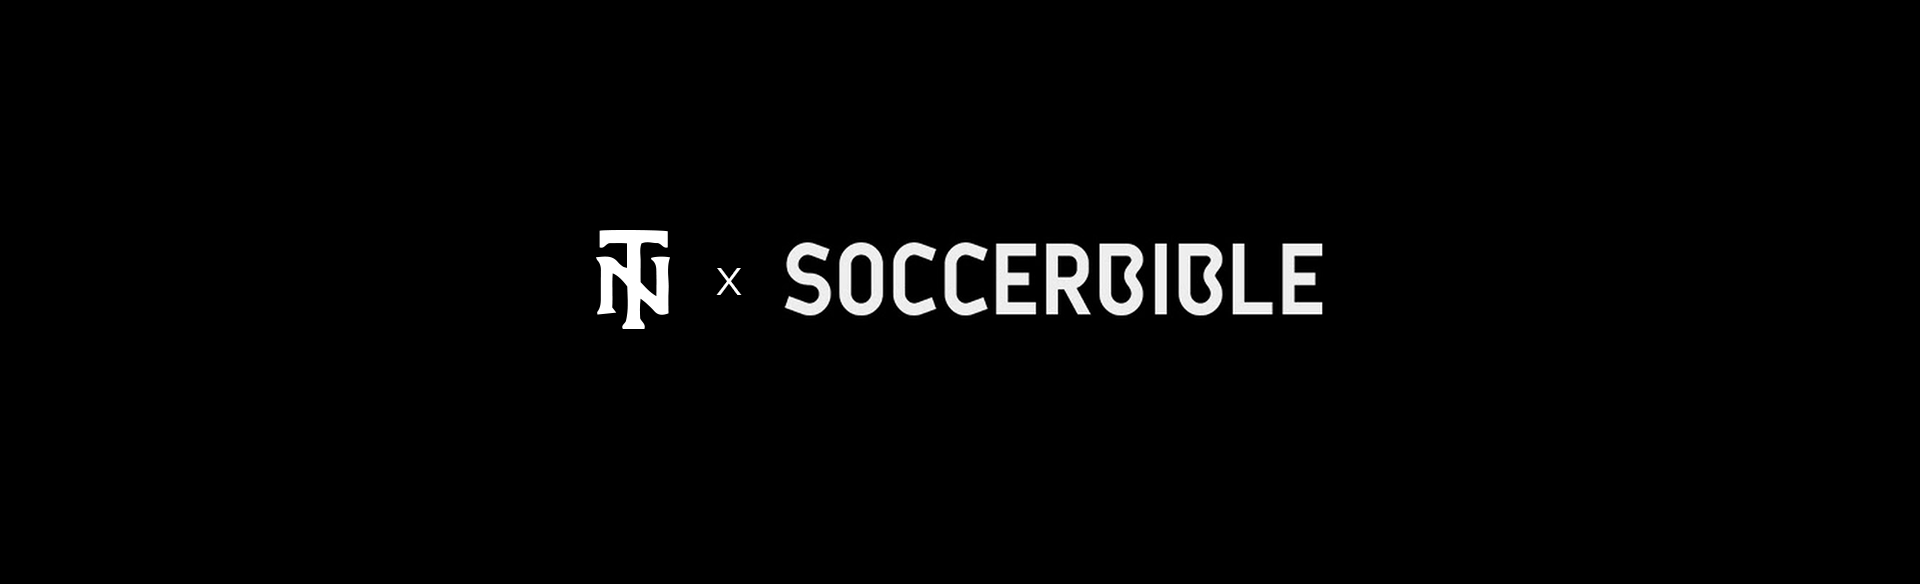 SOCCERBIBLE_11